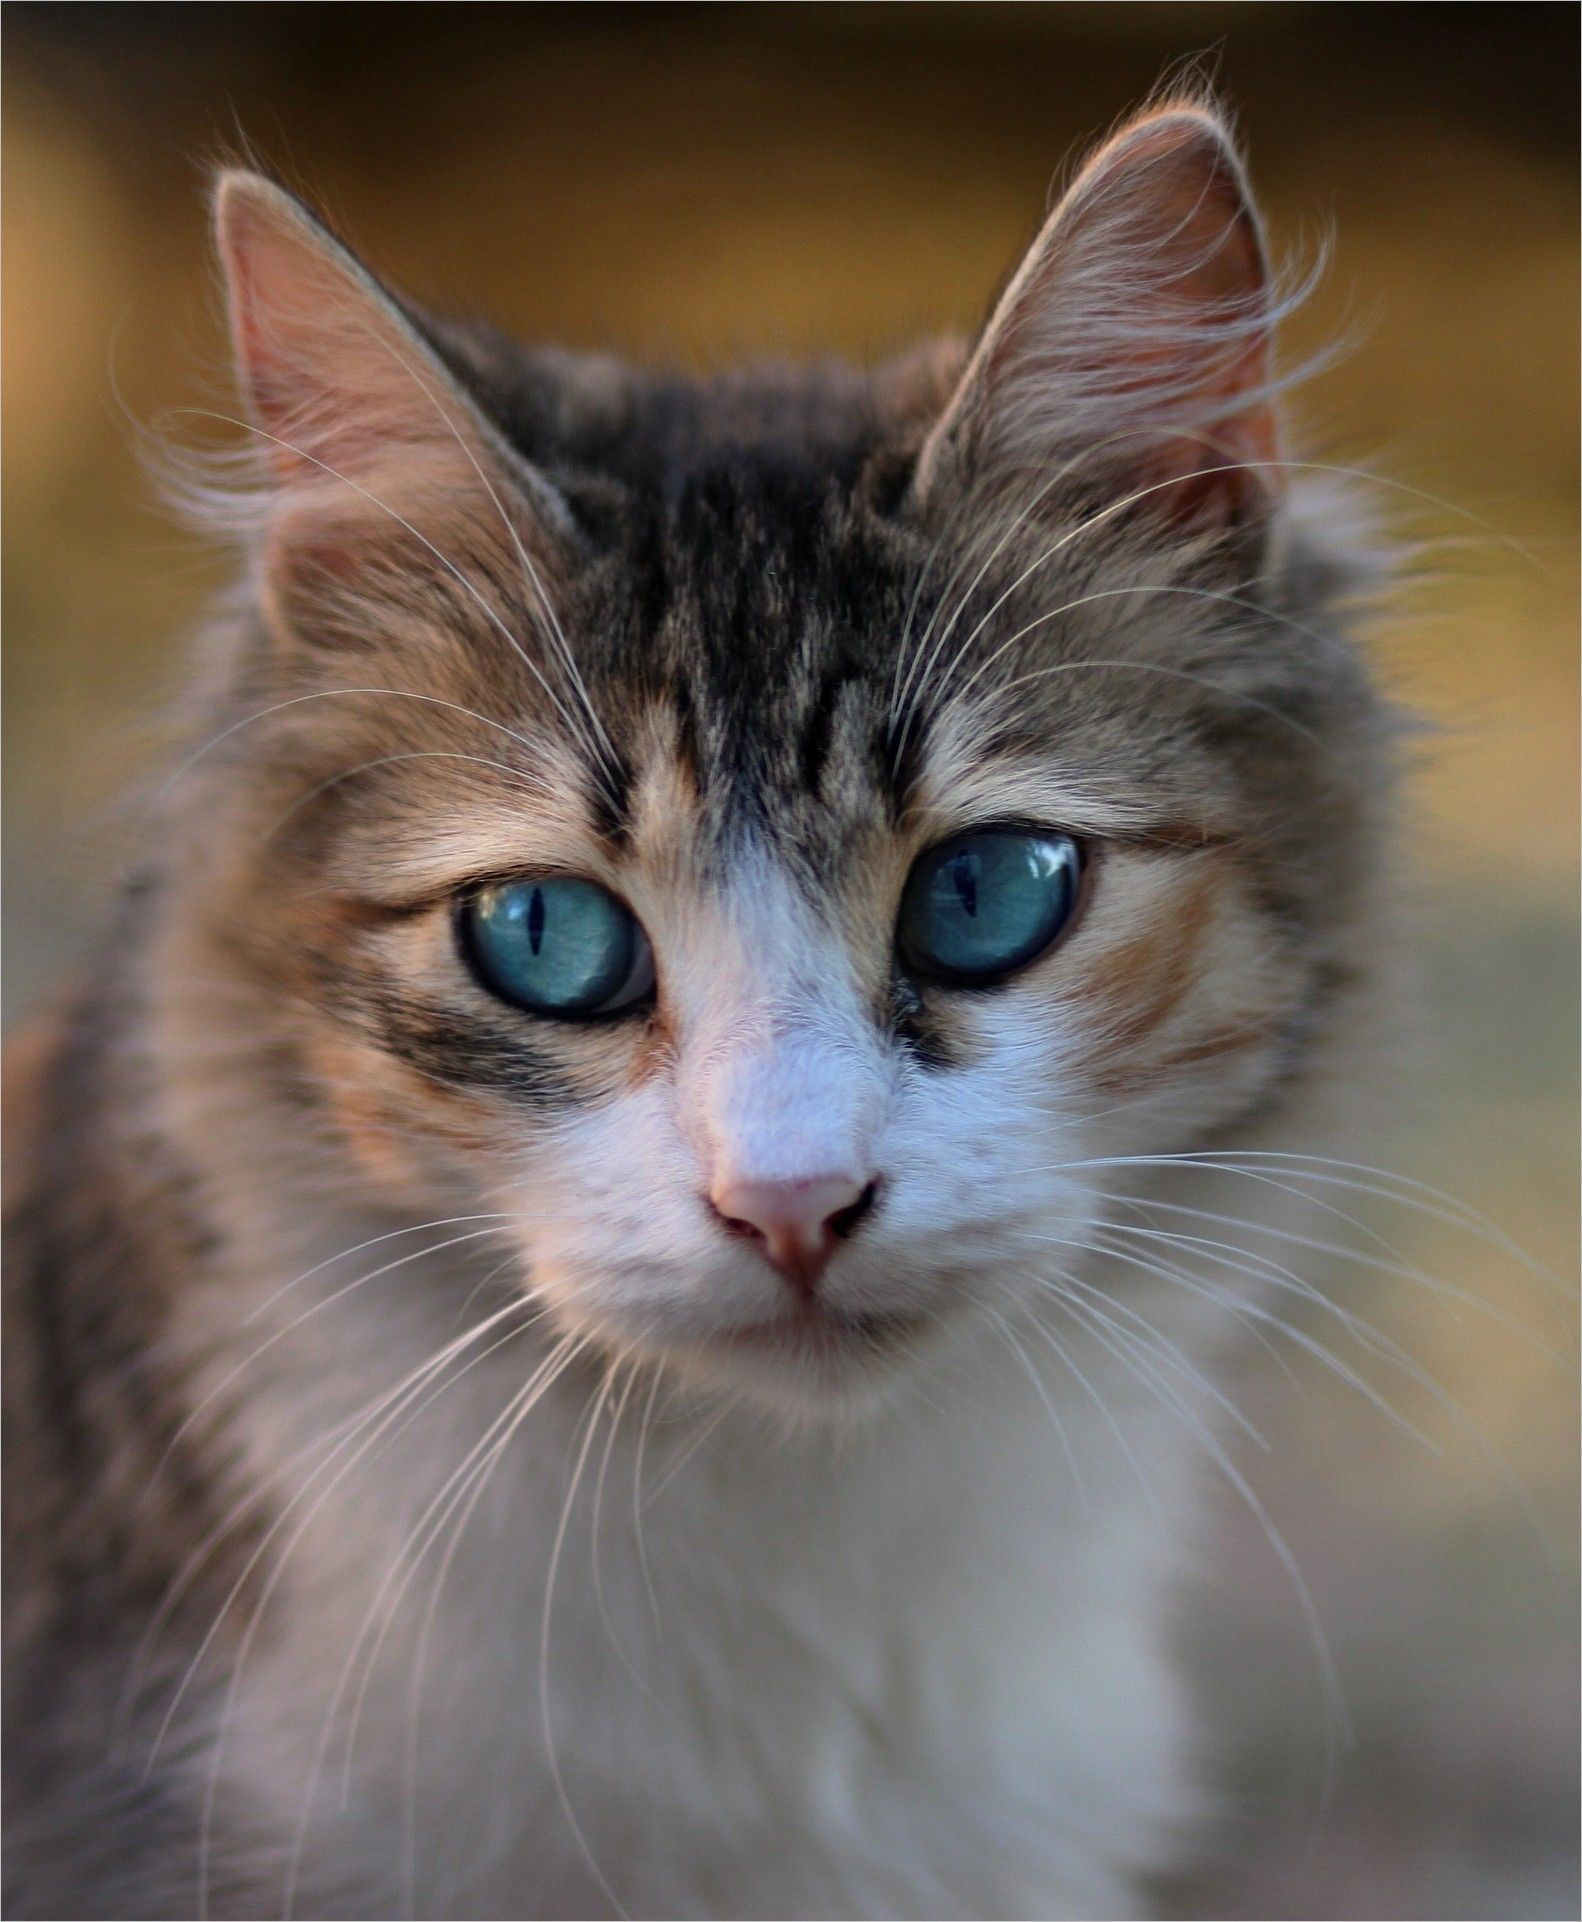 Cat Eyes Image Cat Blue Eyes About Pet Has Red White Black Feathers